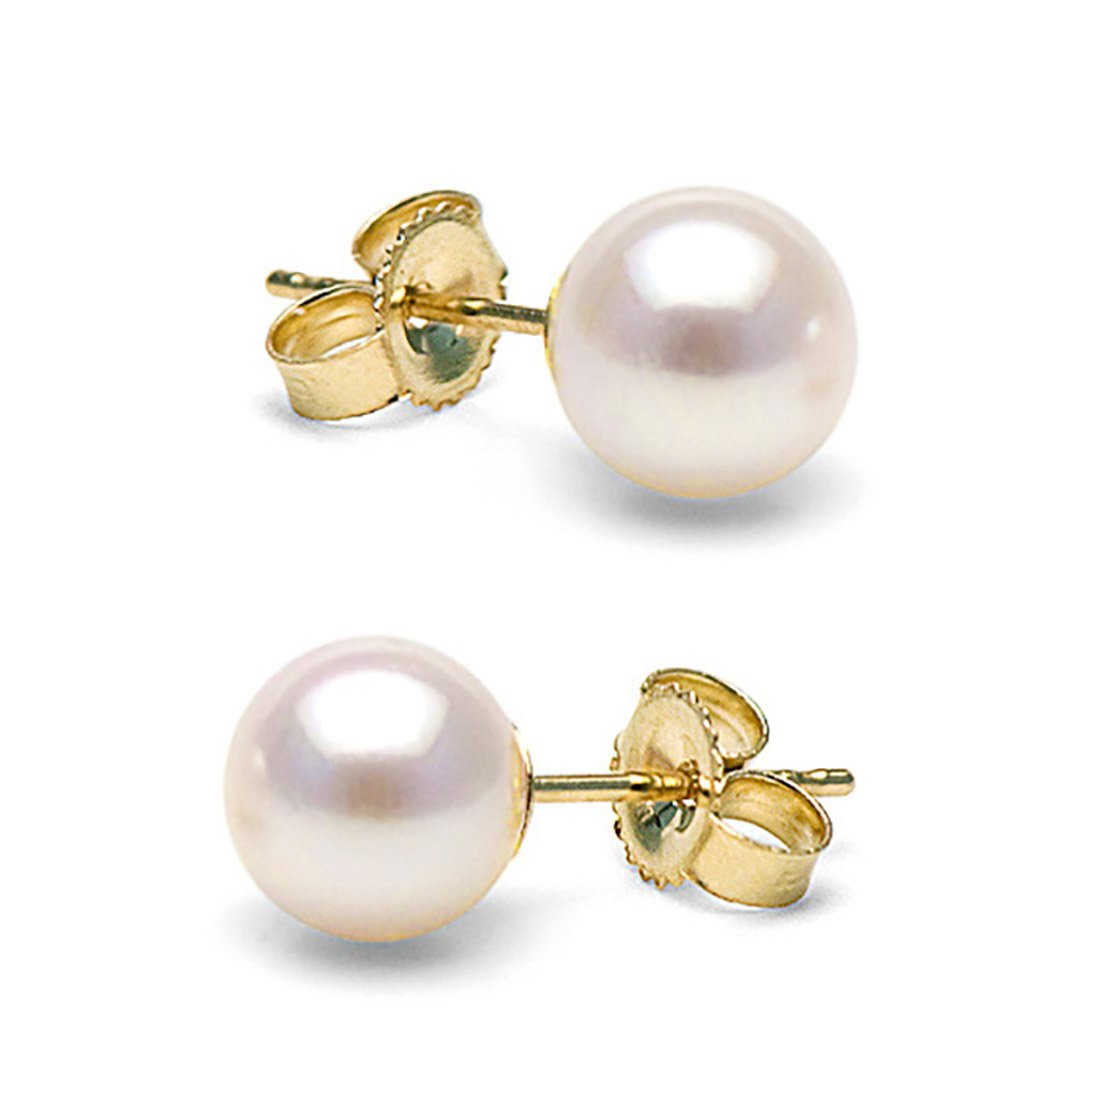 14K Cultured White Japanese Akoya Pearl Stud Earrings, AAA Quality (yellow-gold, 6.5-7.0mm)